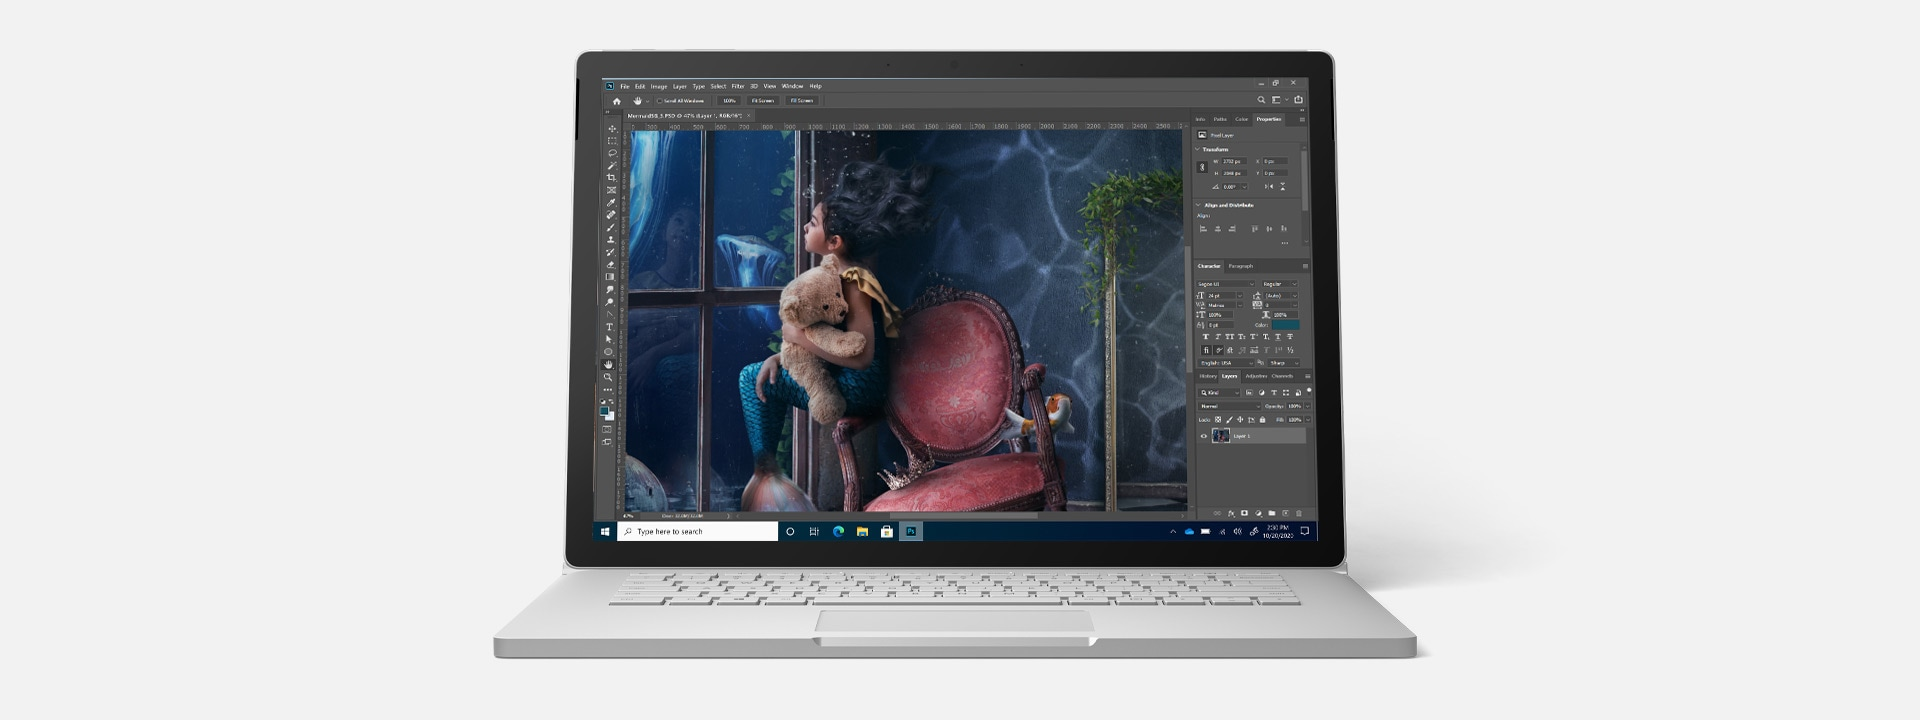 Surface Book 3 running Adobe Photoshop